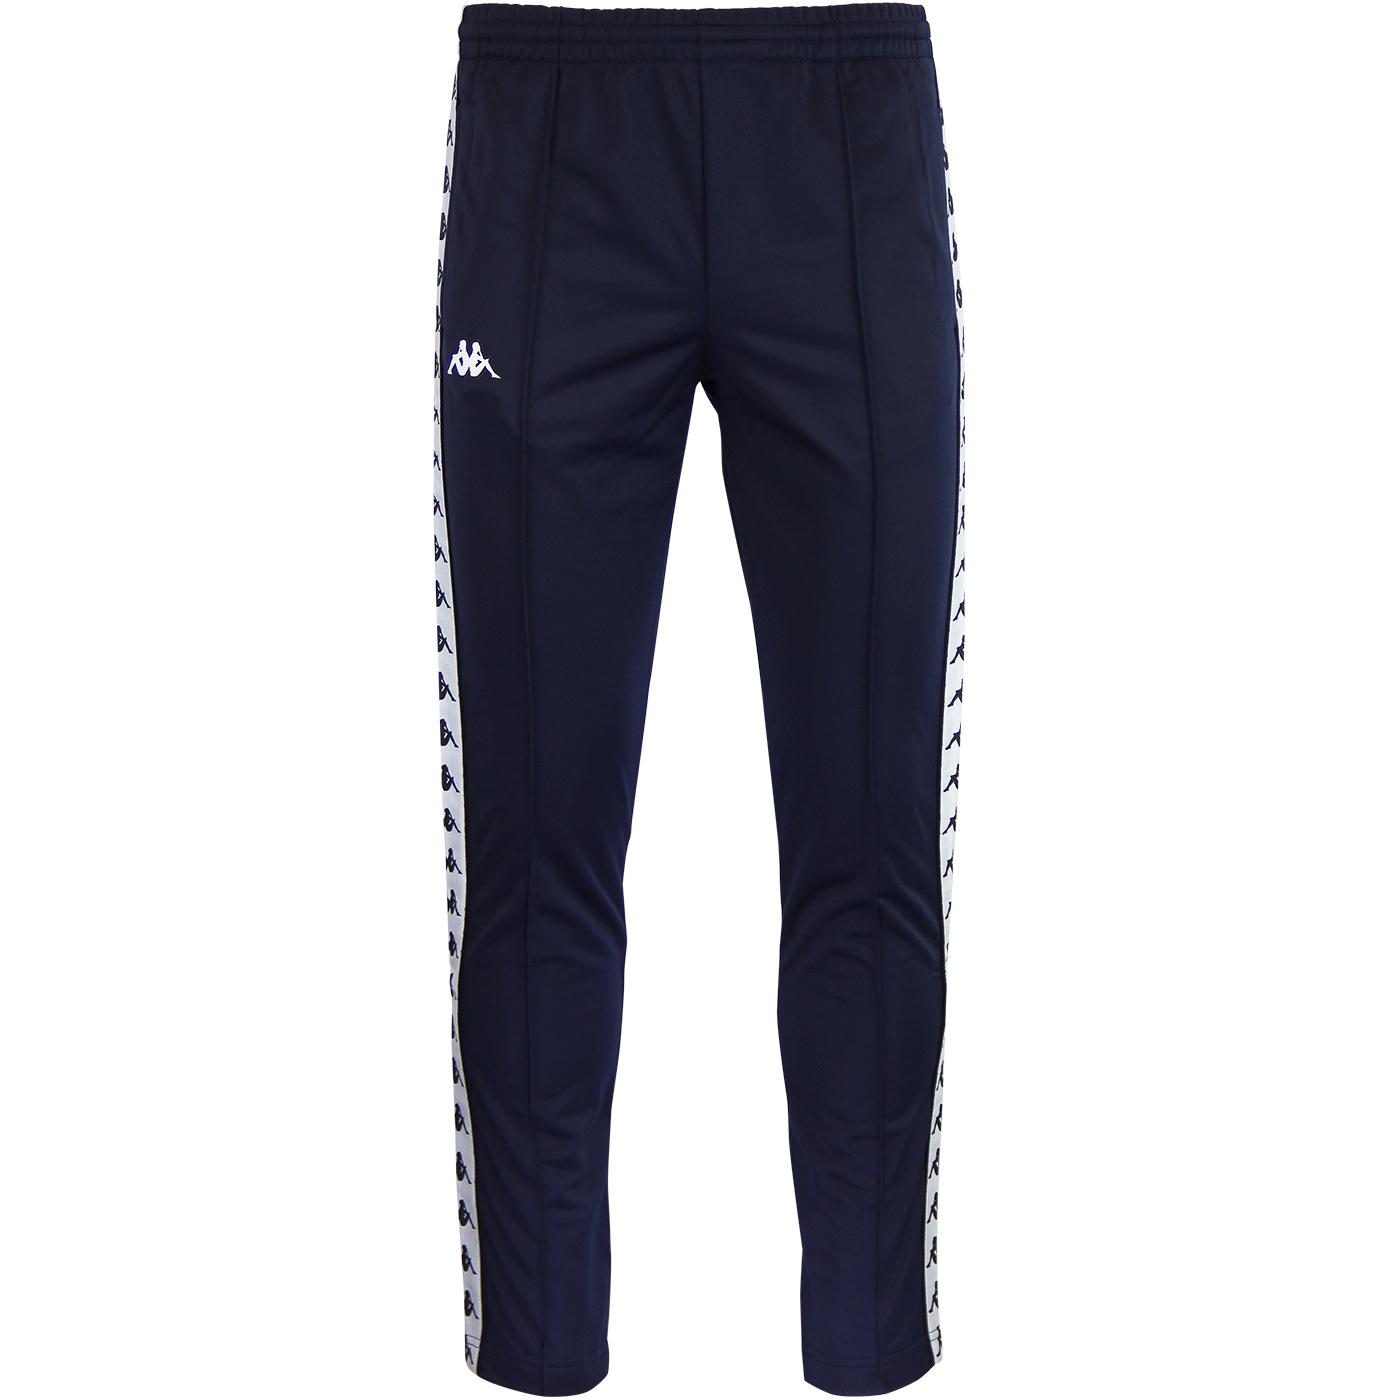 222 Banda Astoria Slim KAPPA Retro Track Pants MB